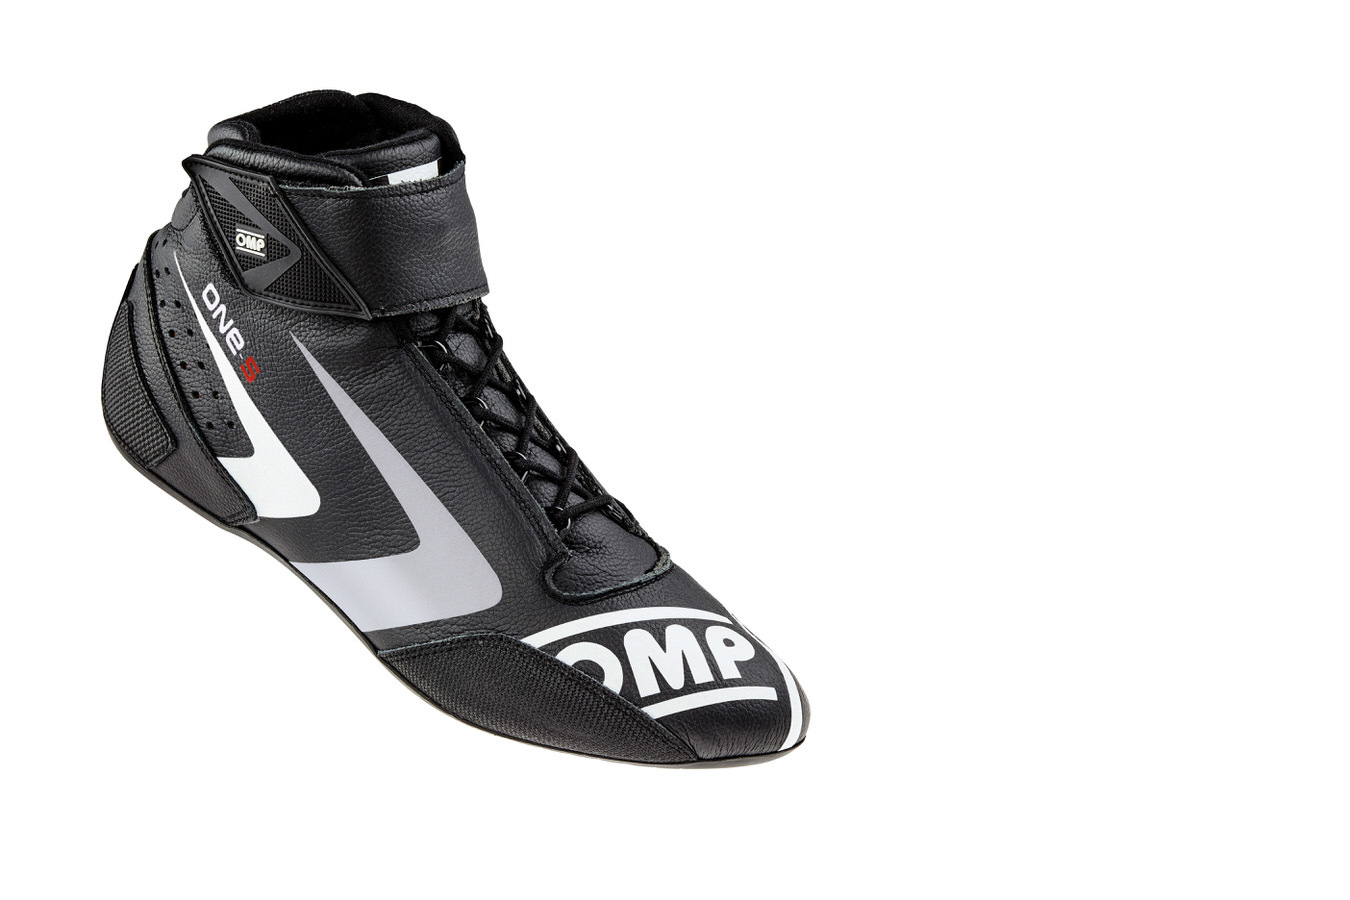 Details about OMP RACING, INC. IC80707148 One S Shoe My2016 Black 13